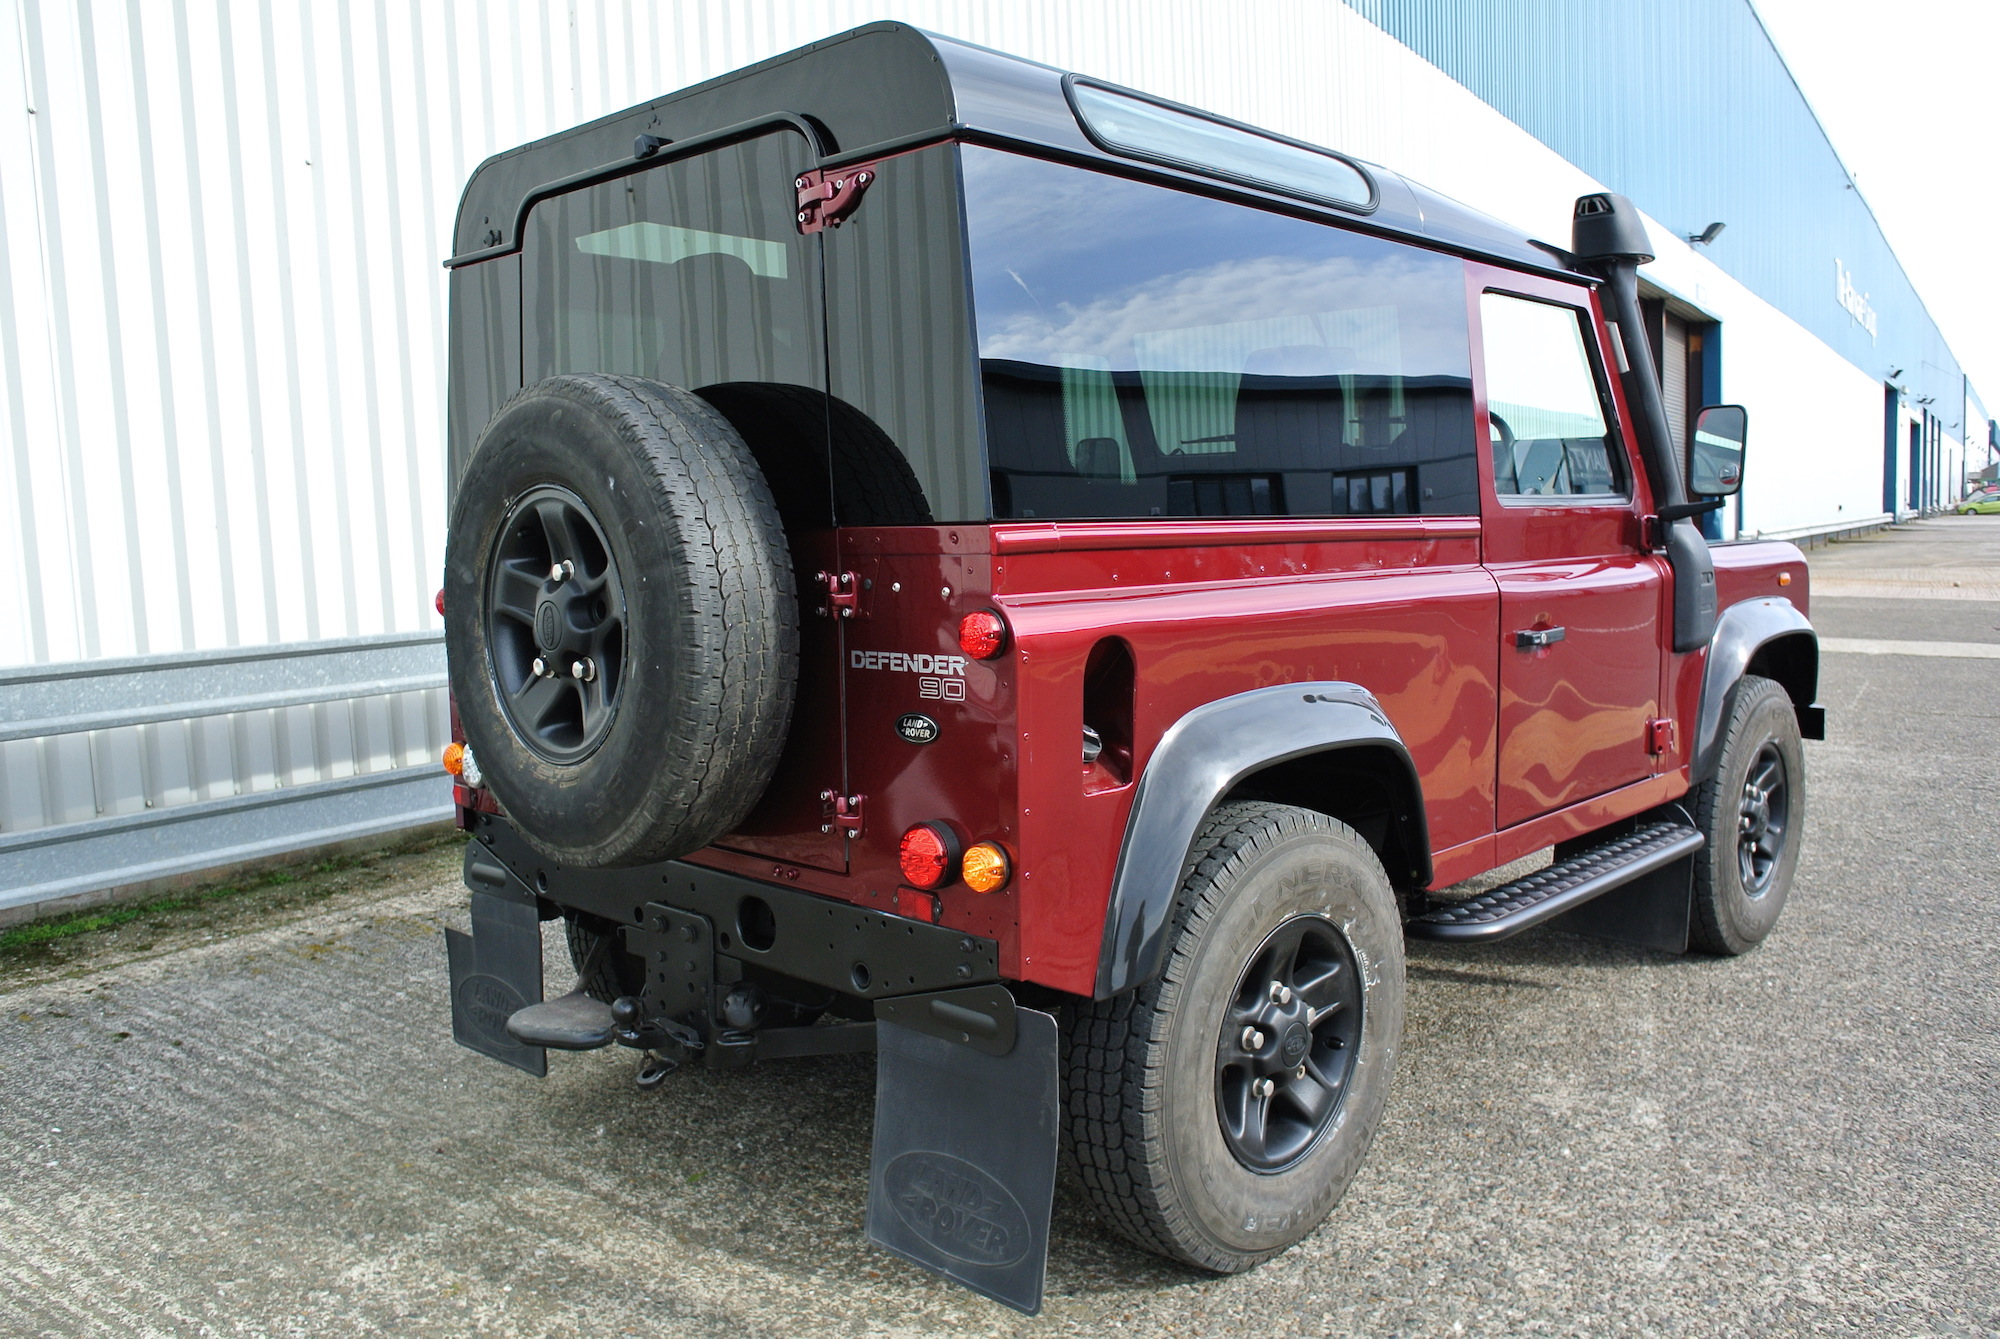 PANORAMIC GLASS - SIDES AND REAR QUARTERS £896. REAR DOOR